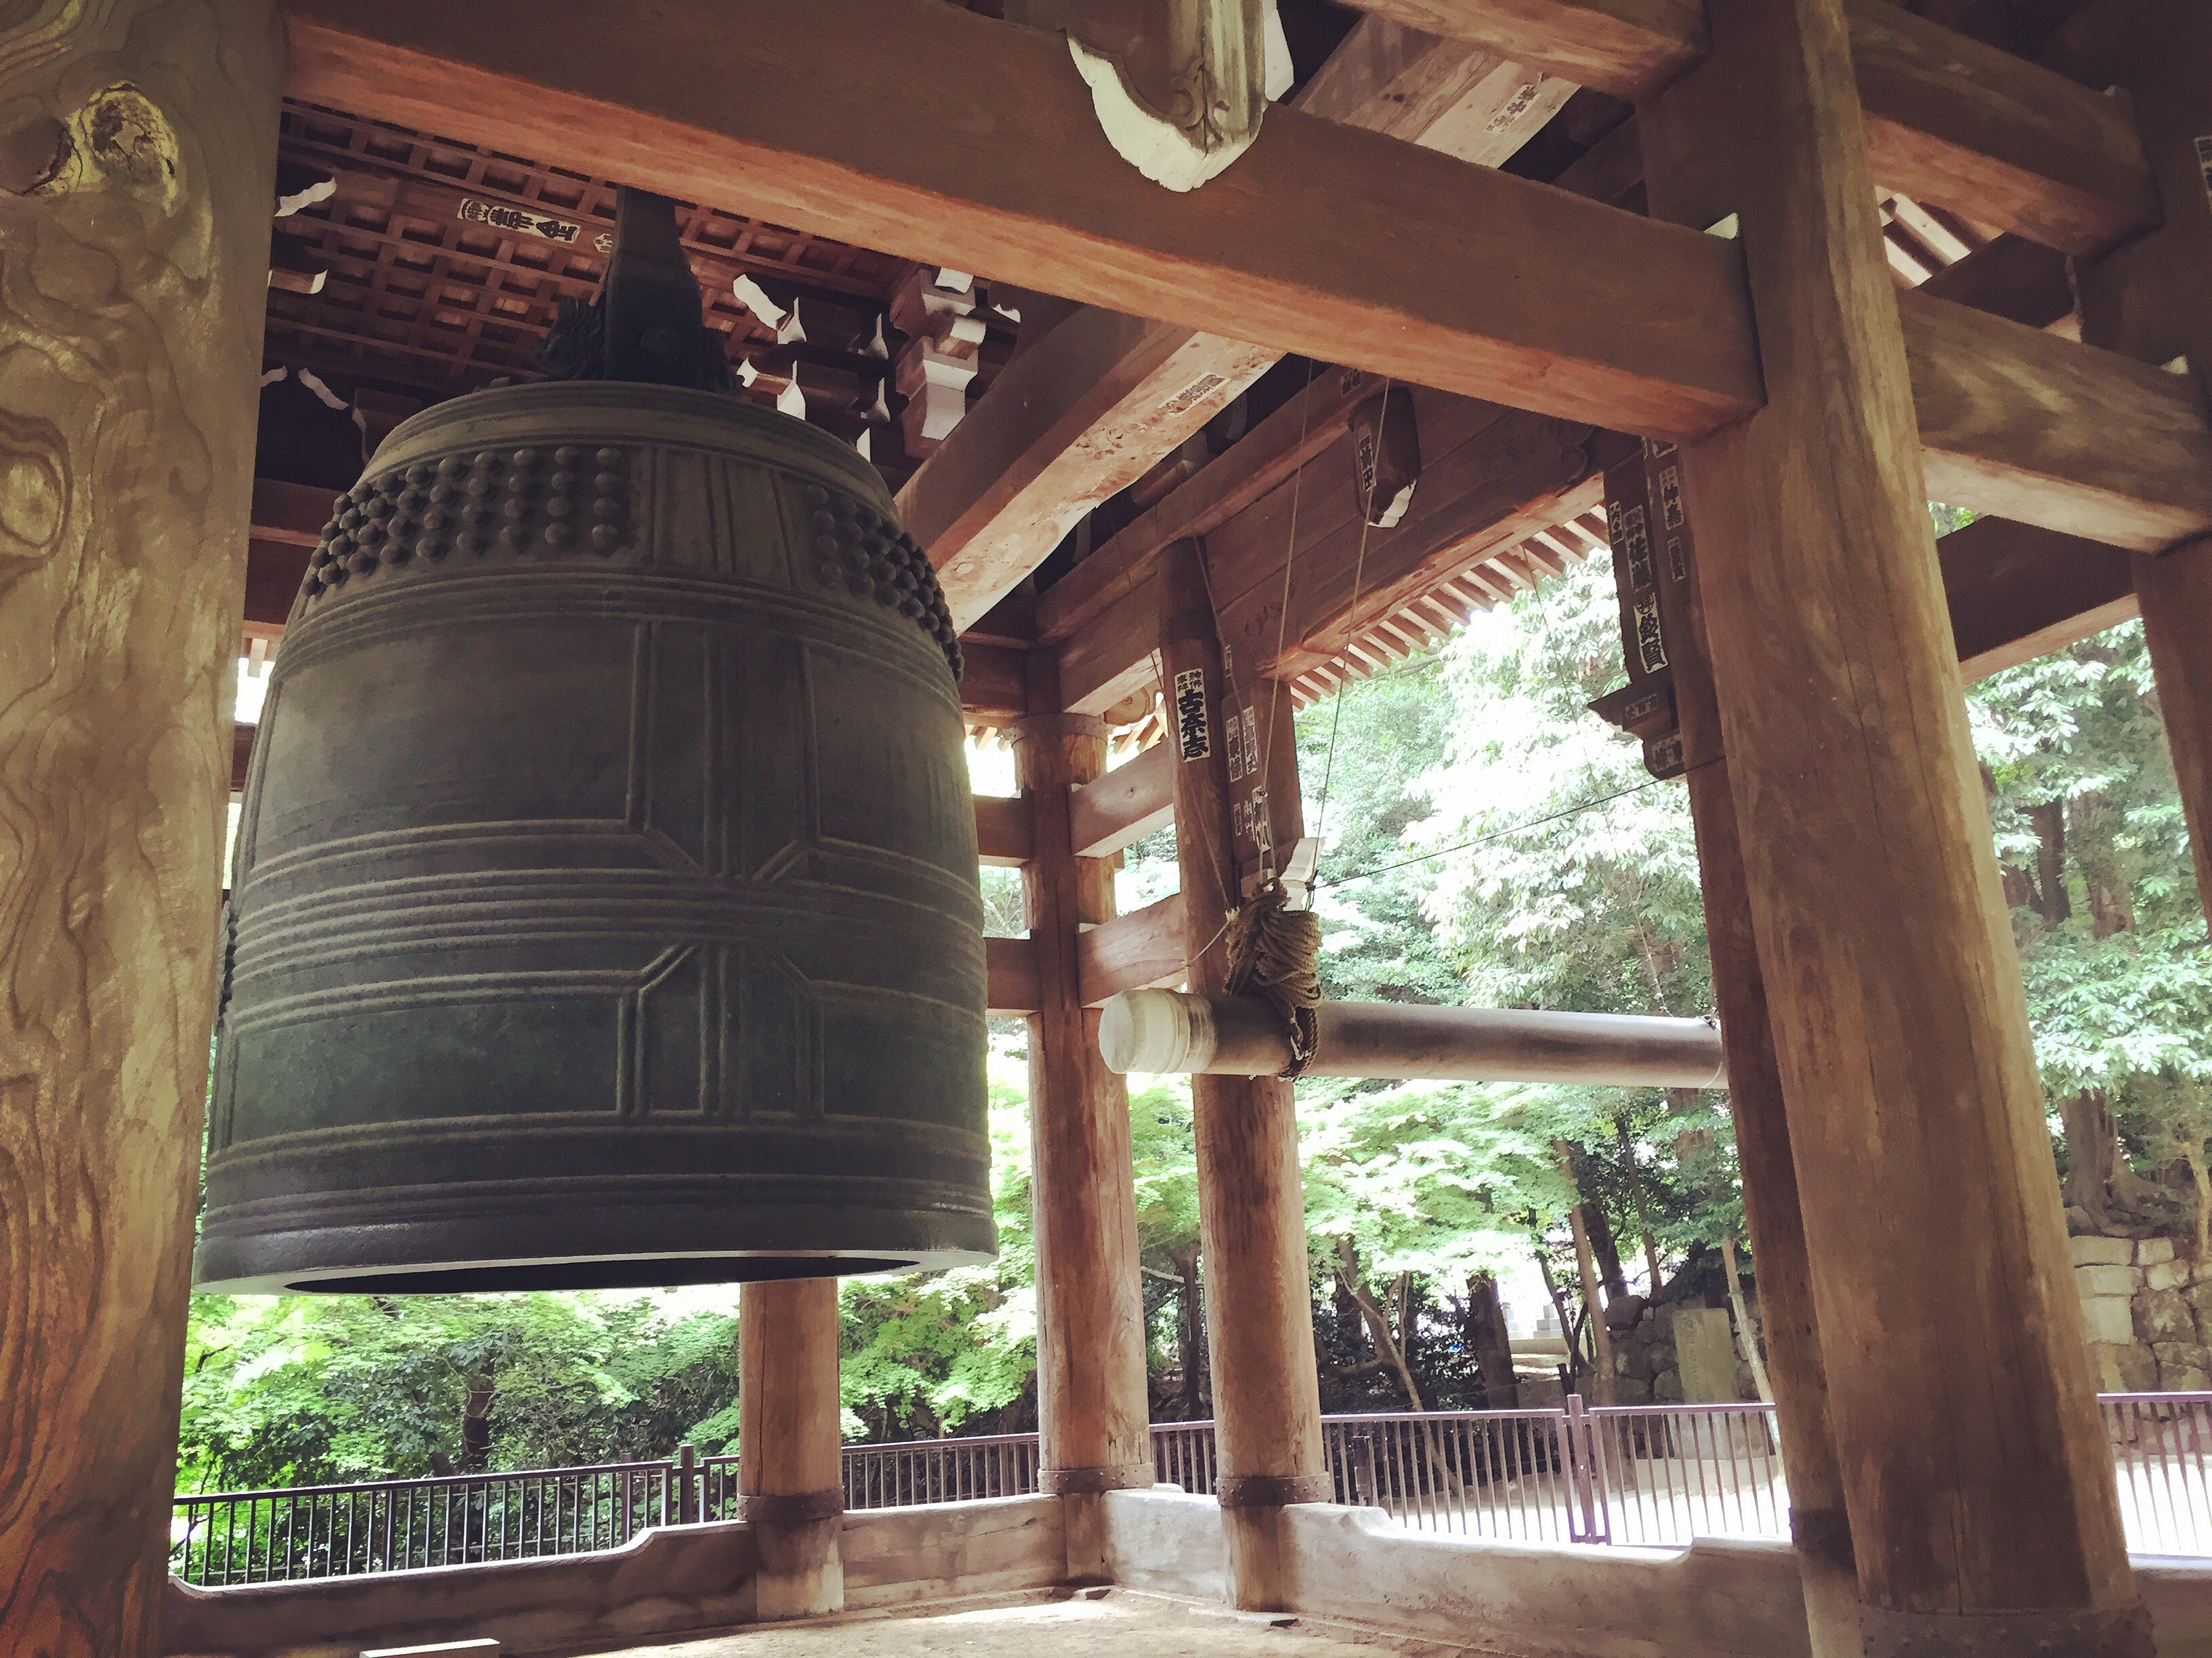 The Bell of Mindfulness